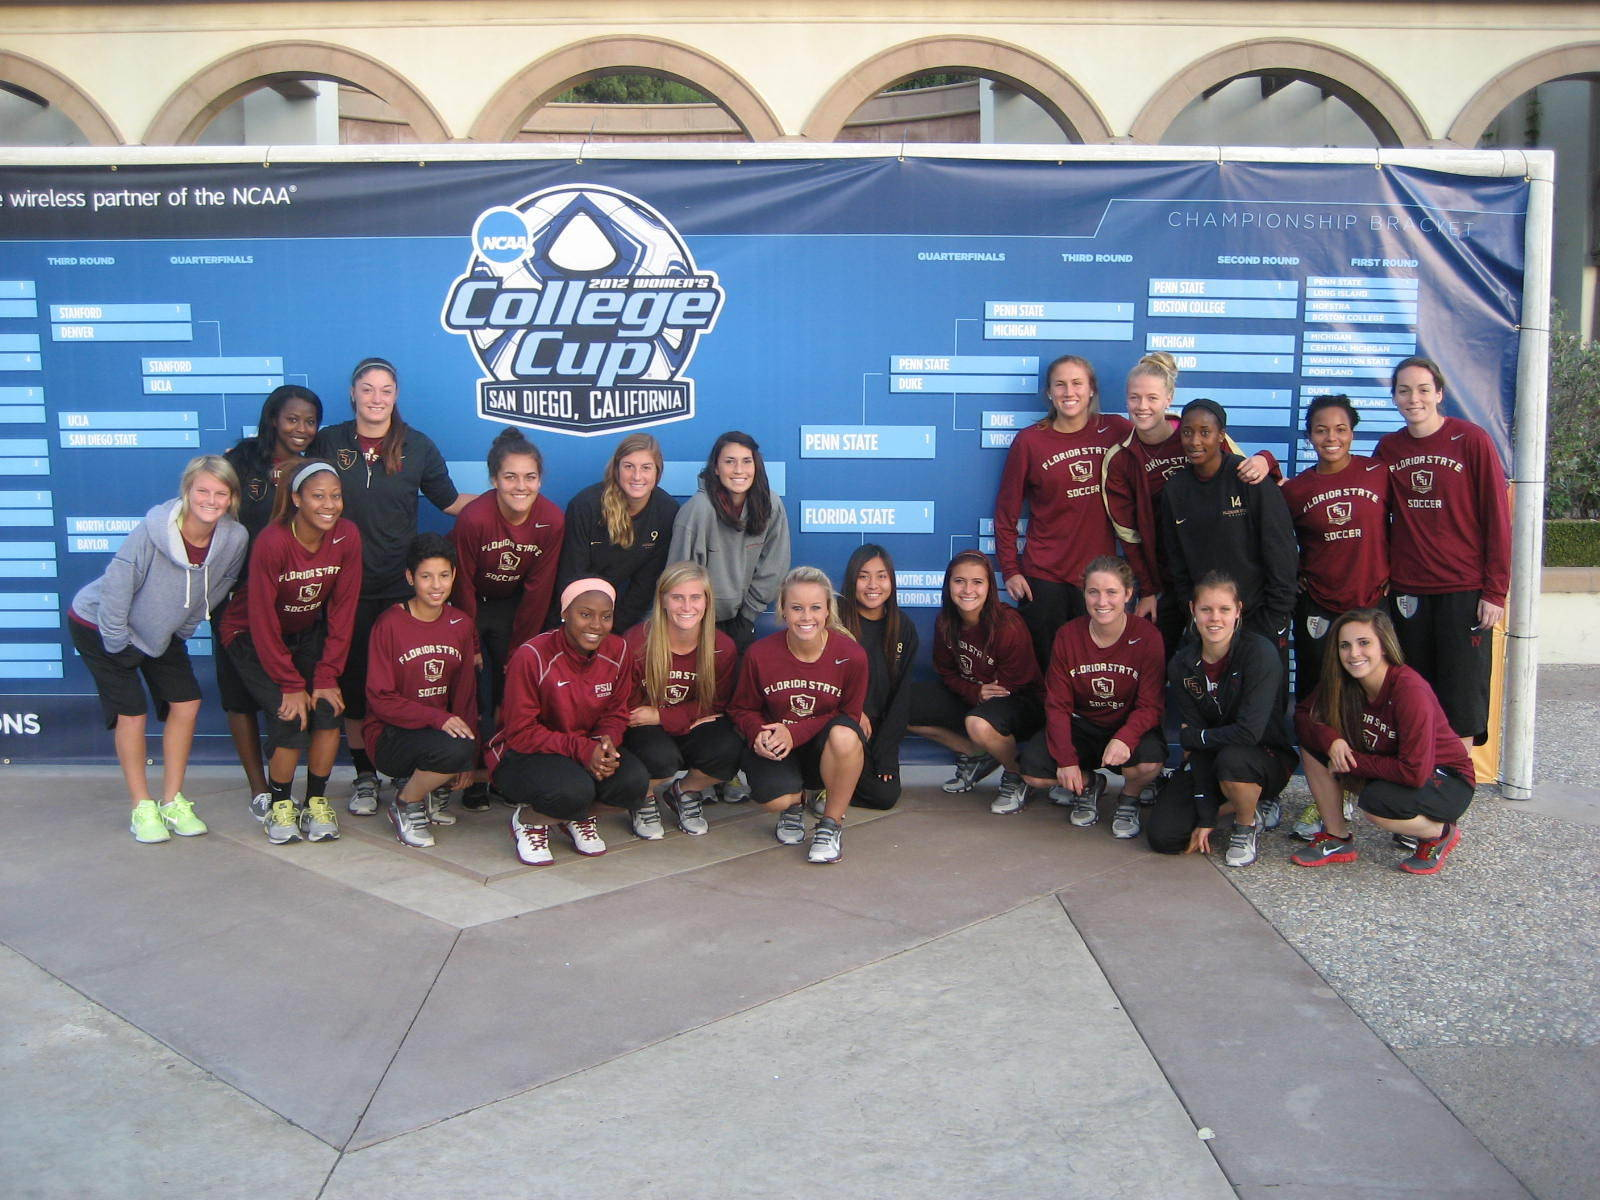 The 2012 Seminoles pose in front of a live sized bracket at Torero Stadium.